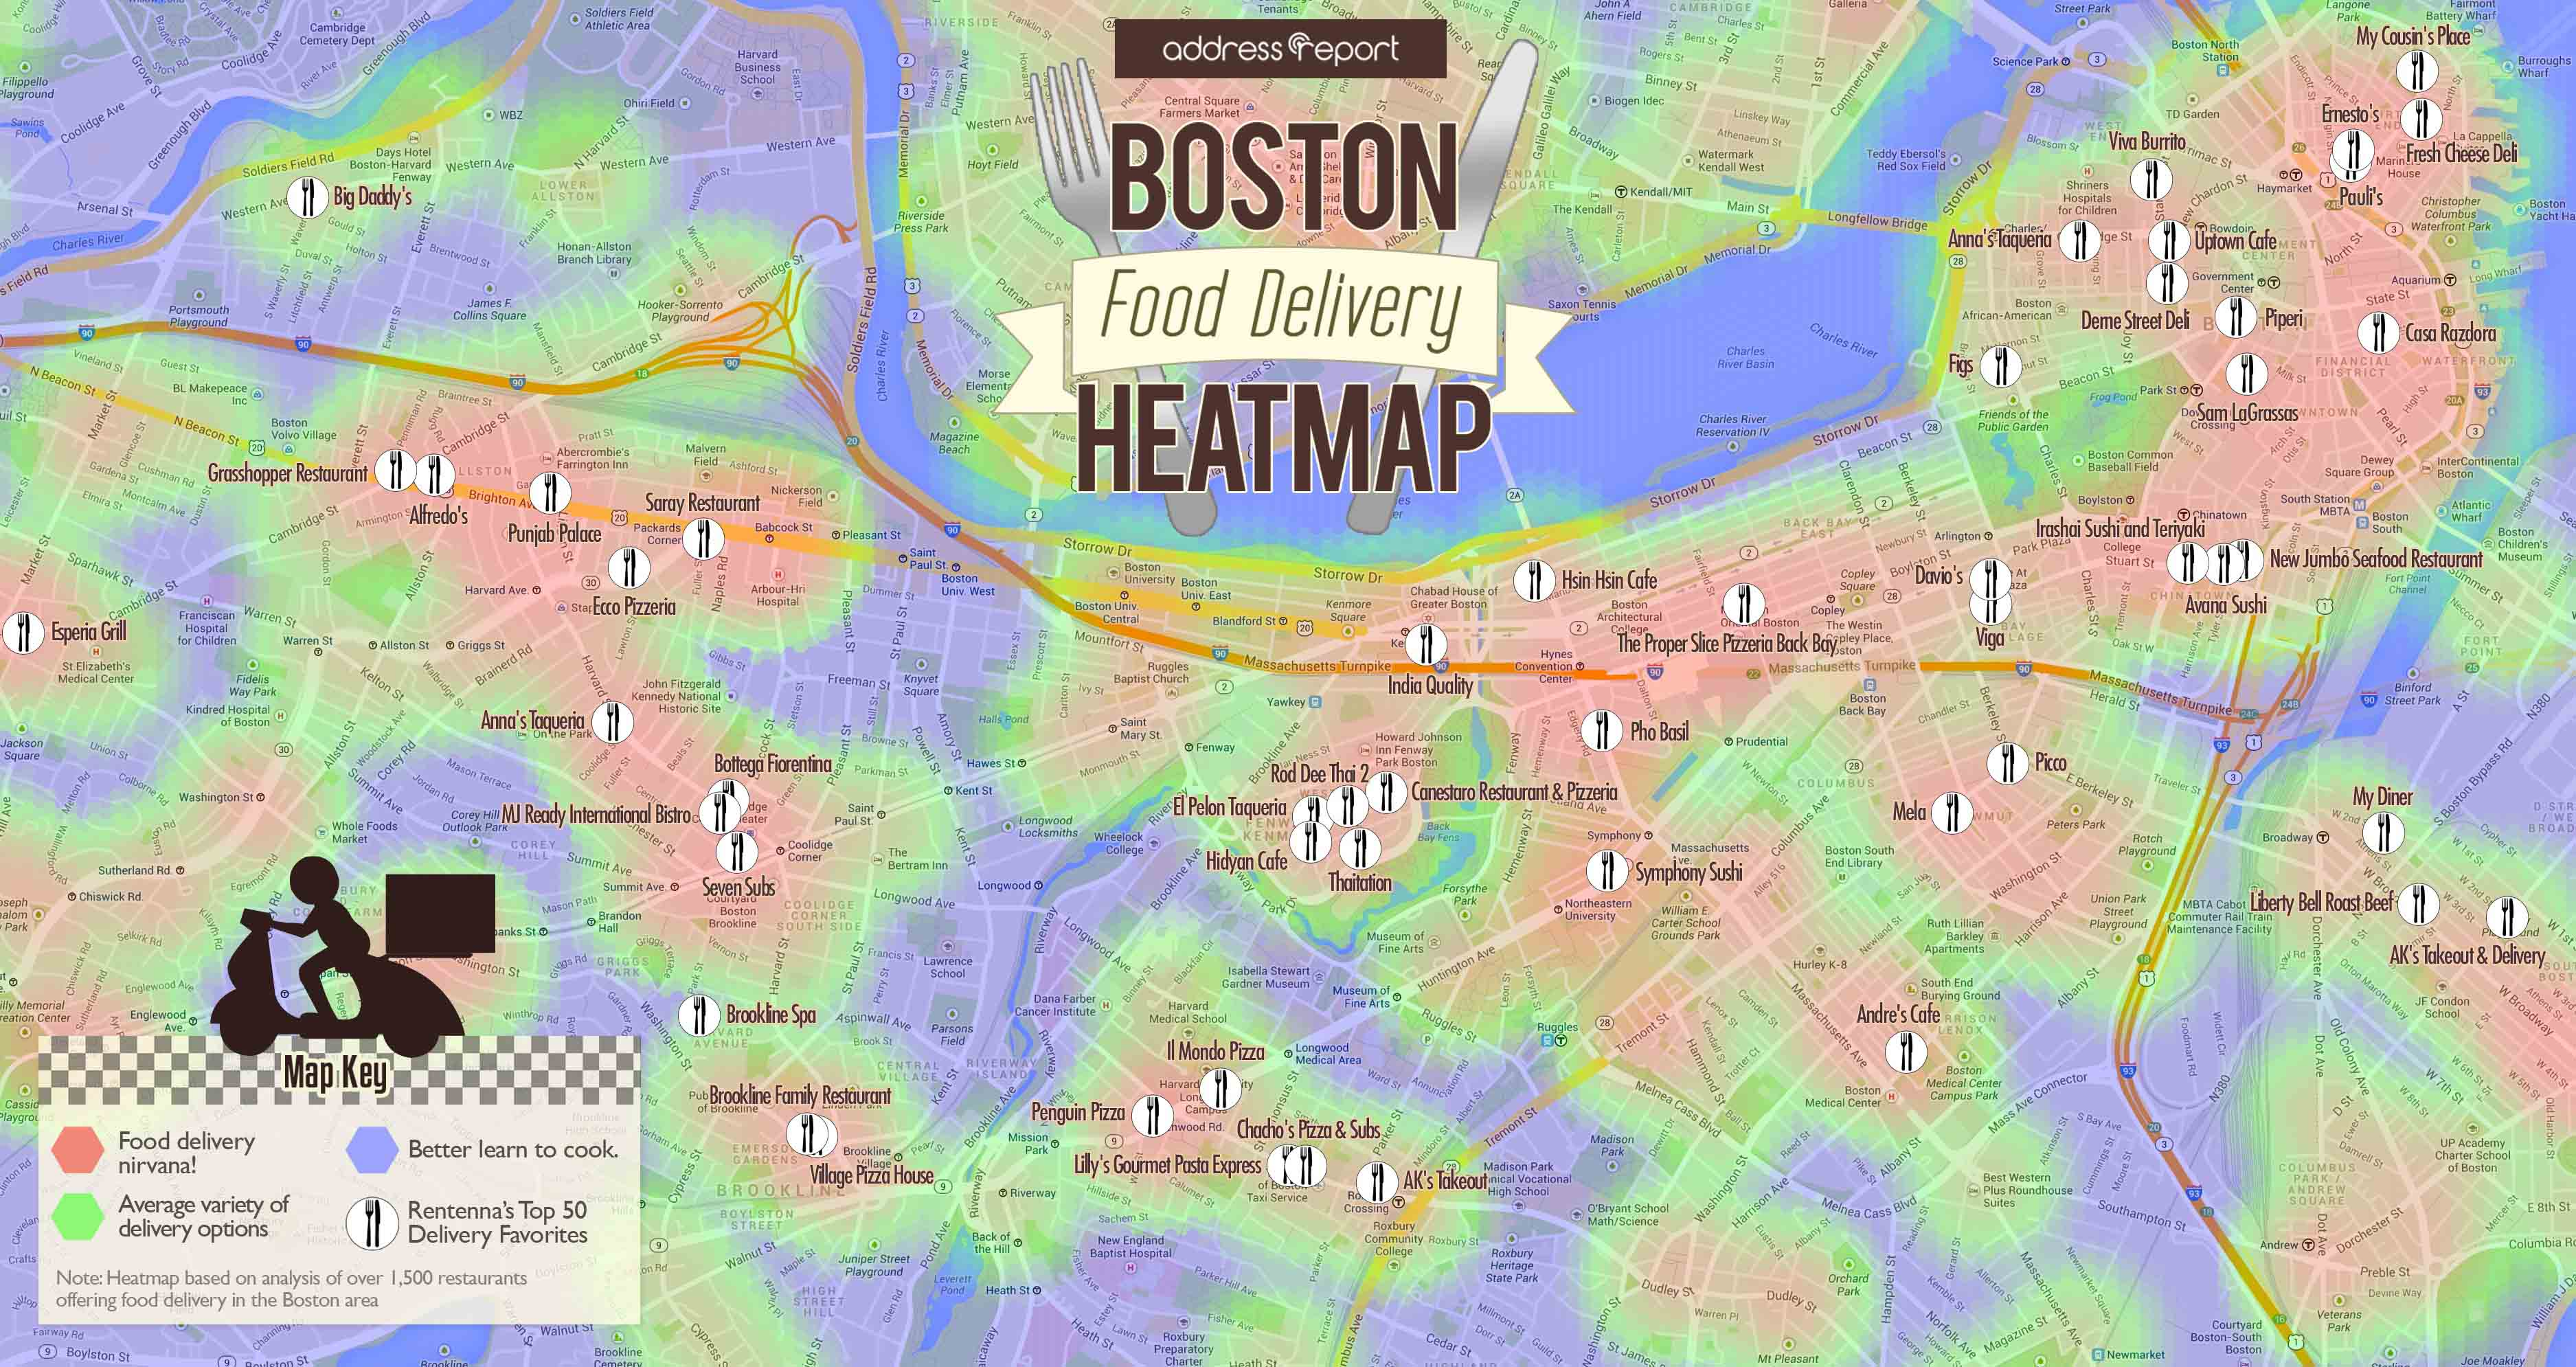 The Boston Food Delivery Heatmap by Rentenna